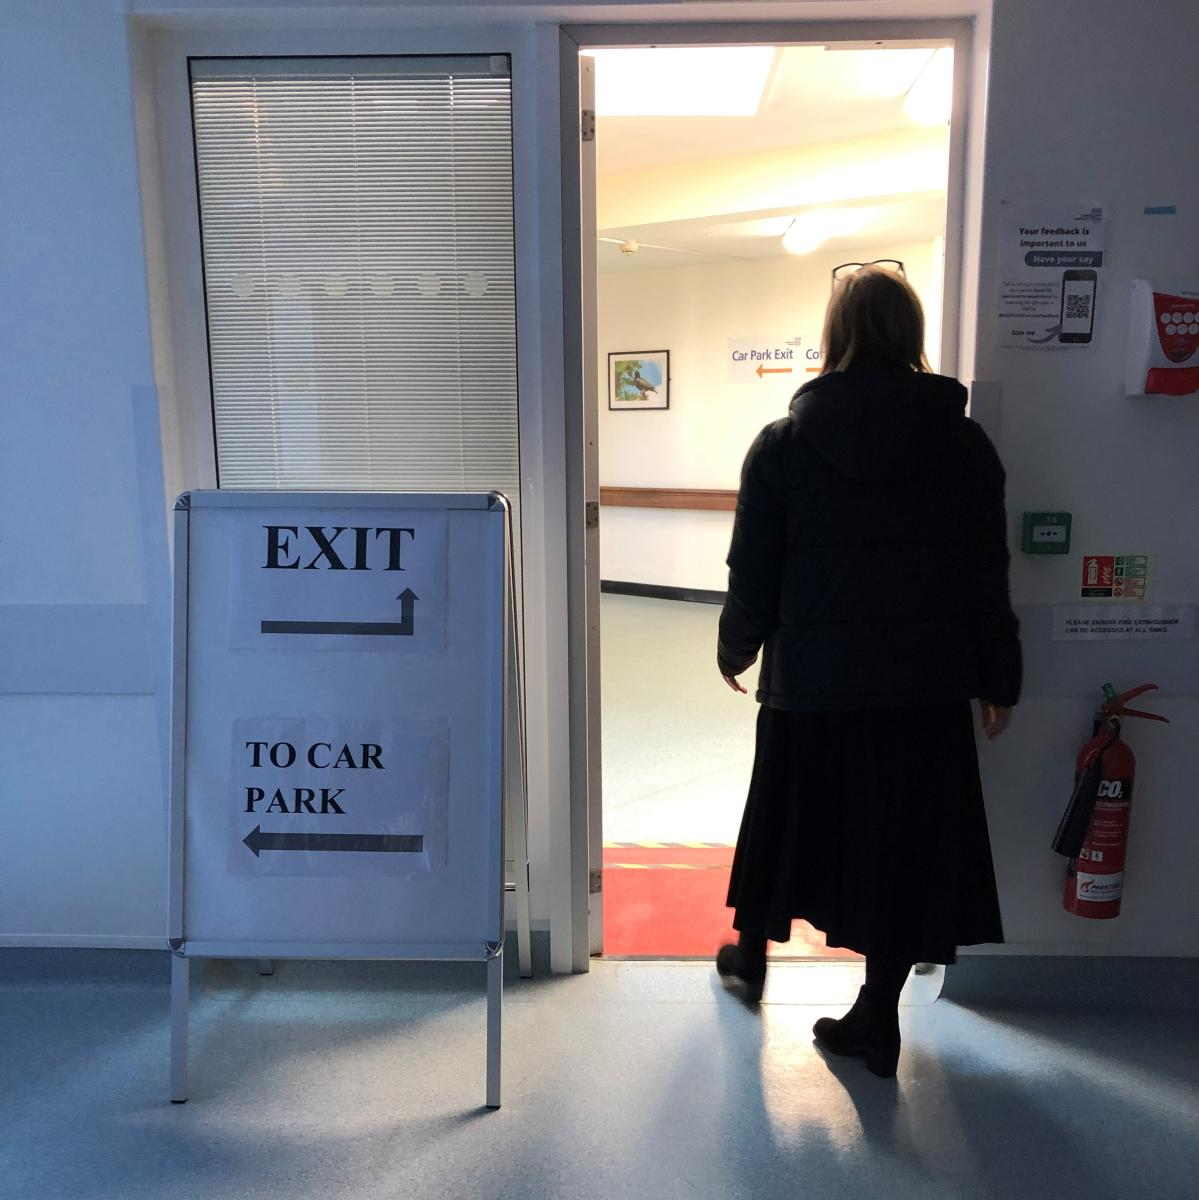 After your observation period, please follow the exit signs back to the car park…